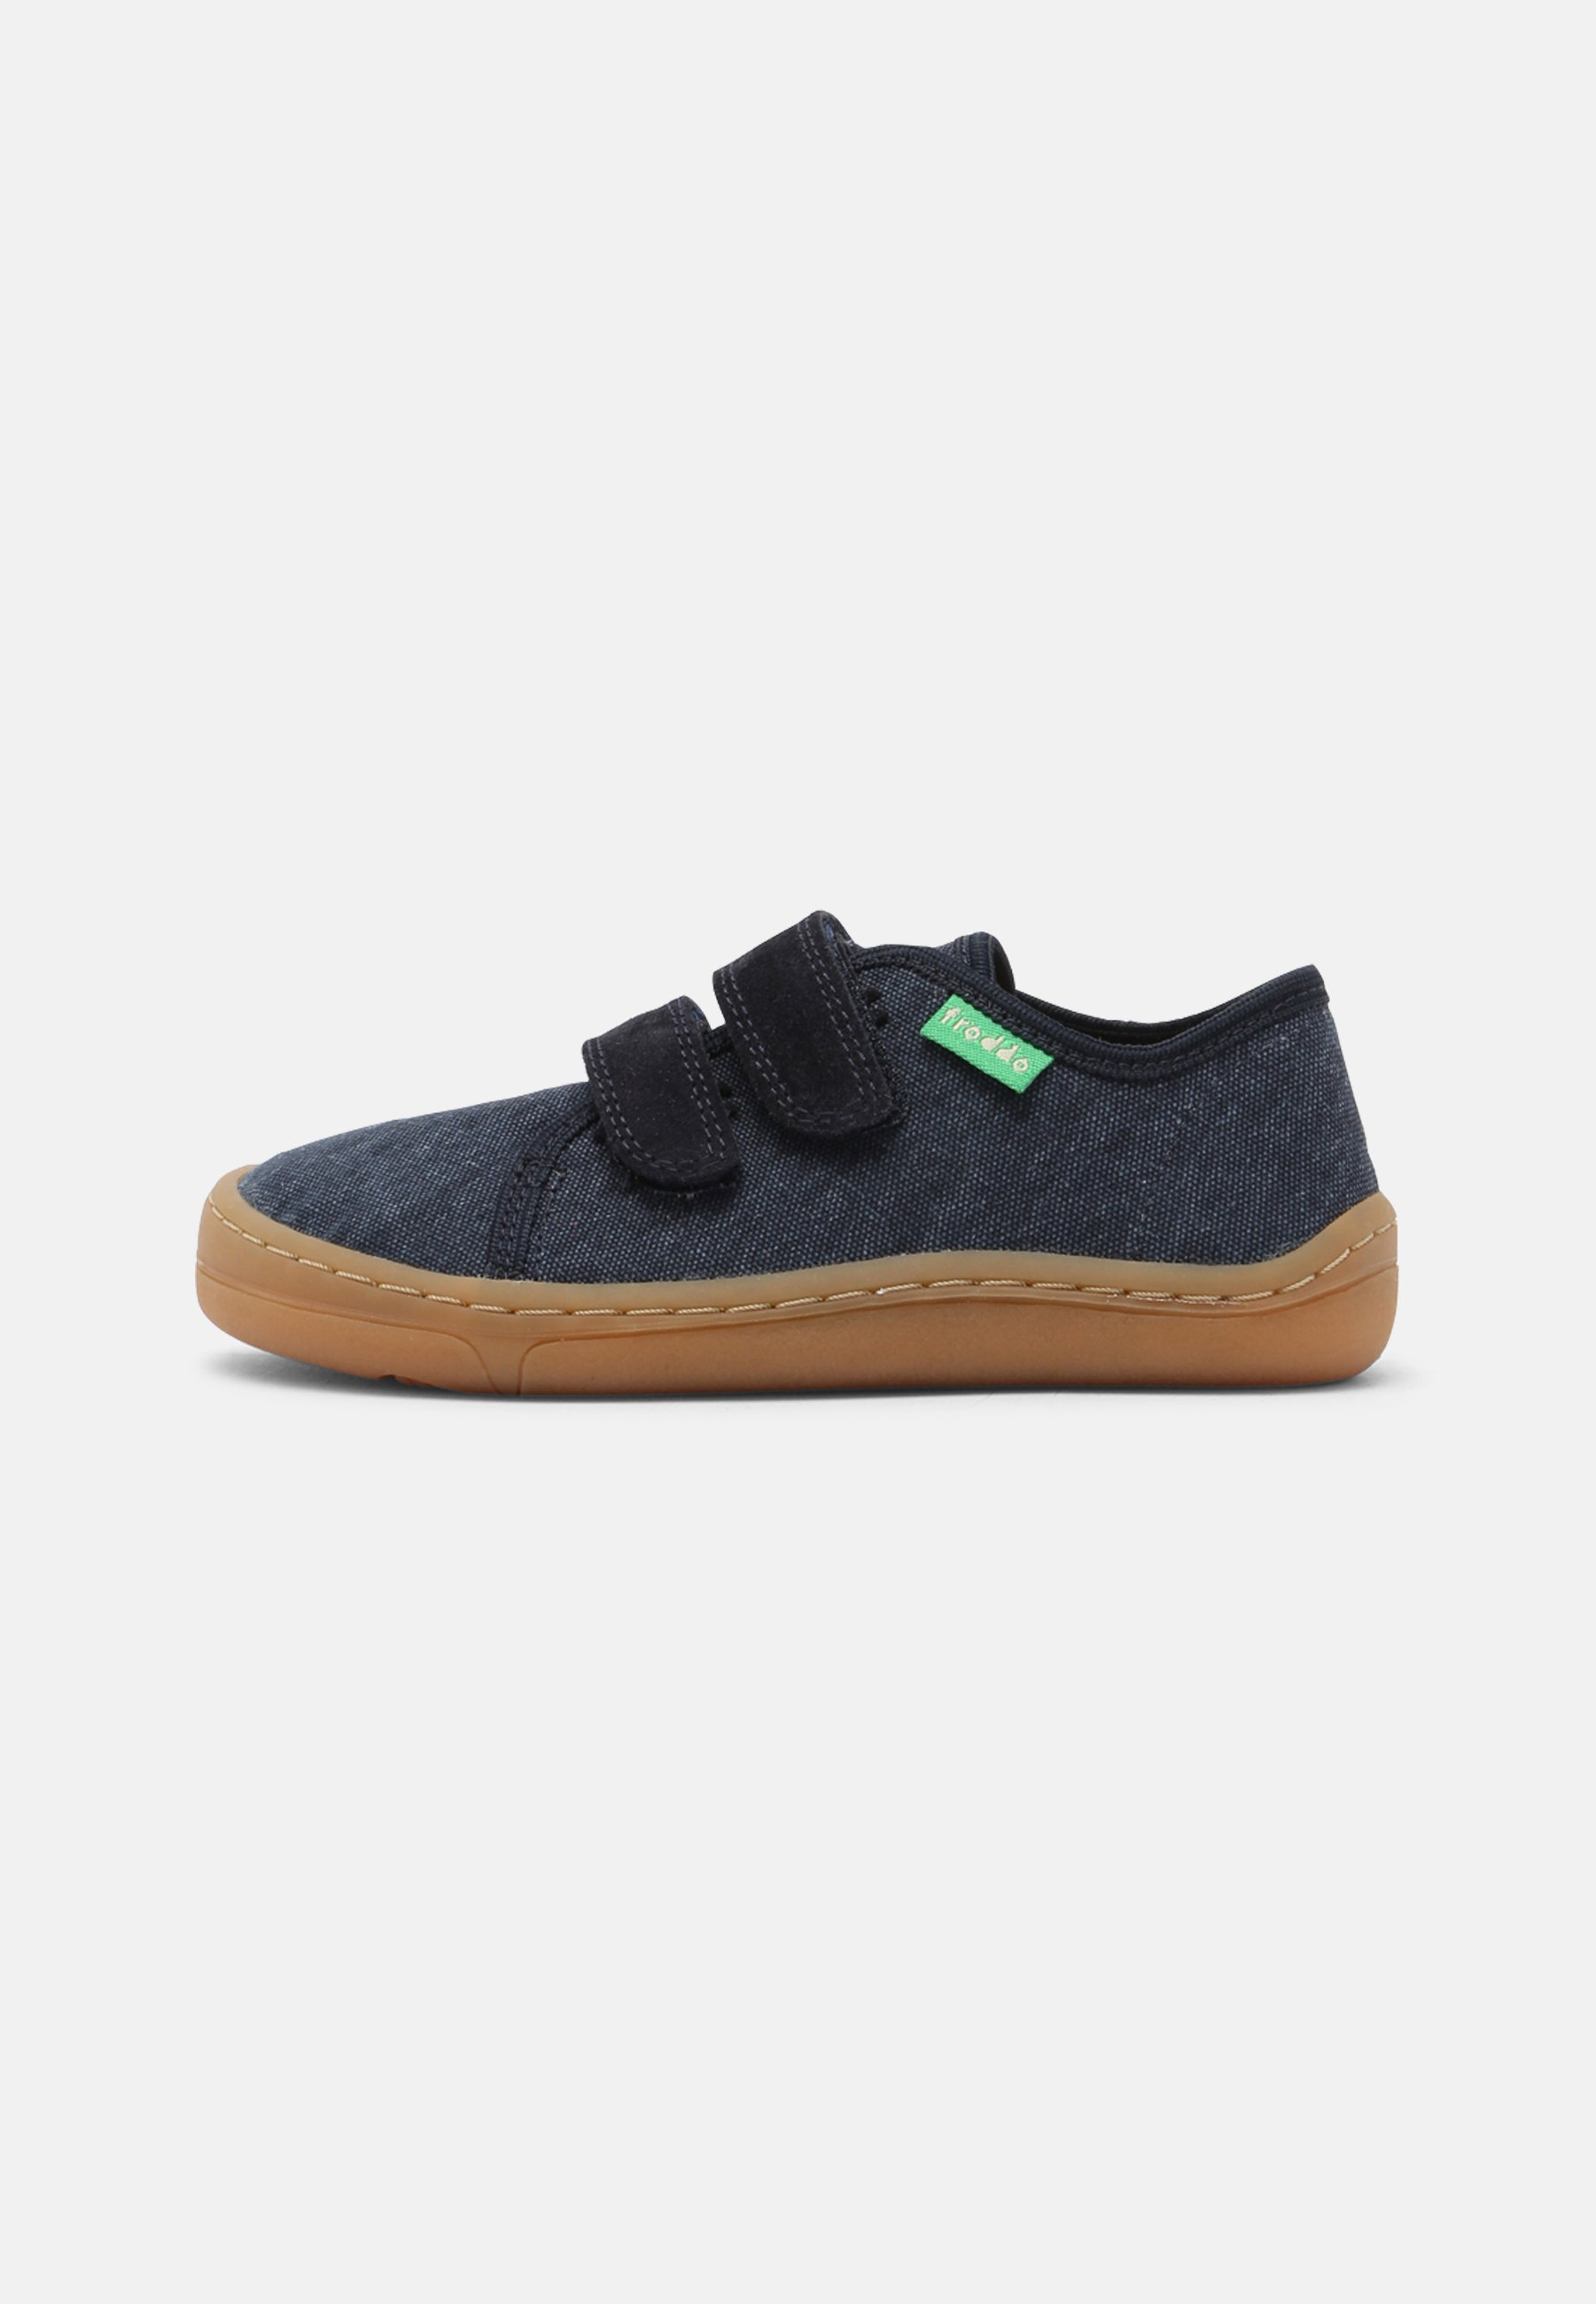 Kids BAREFOOT - Touch-strap shoes